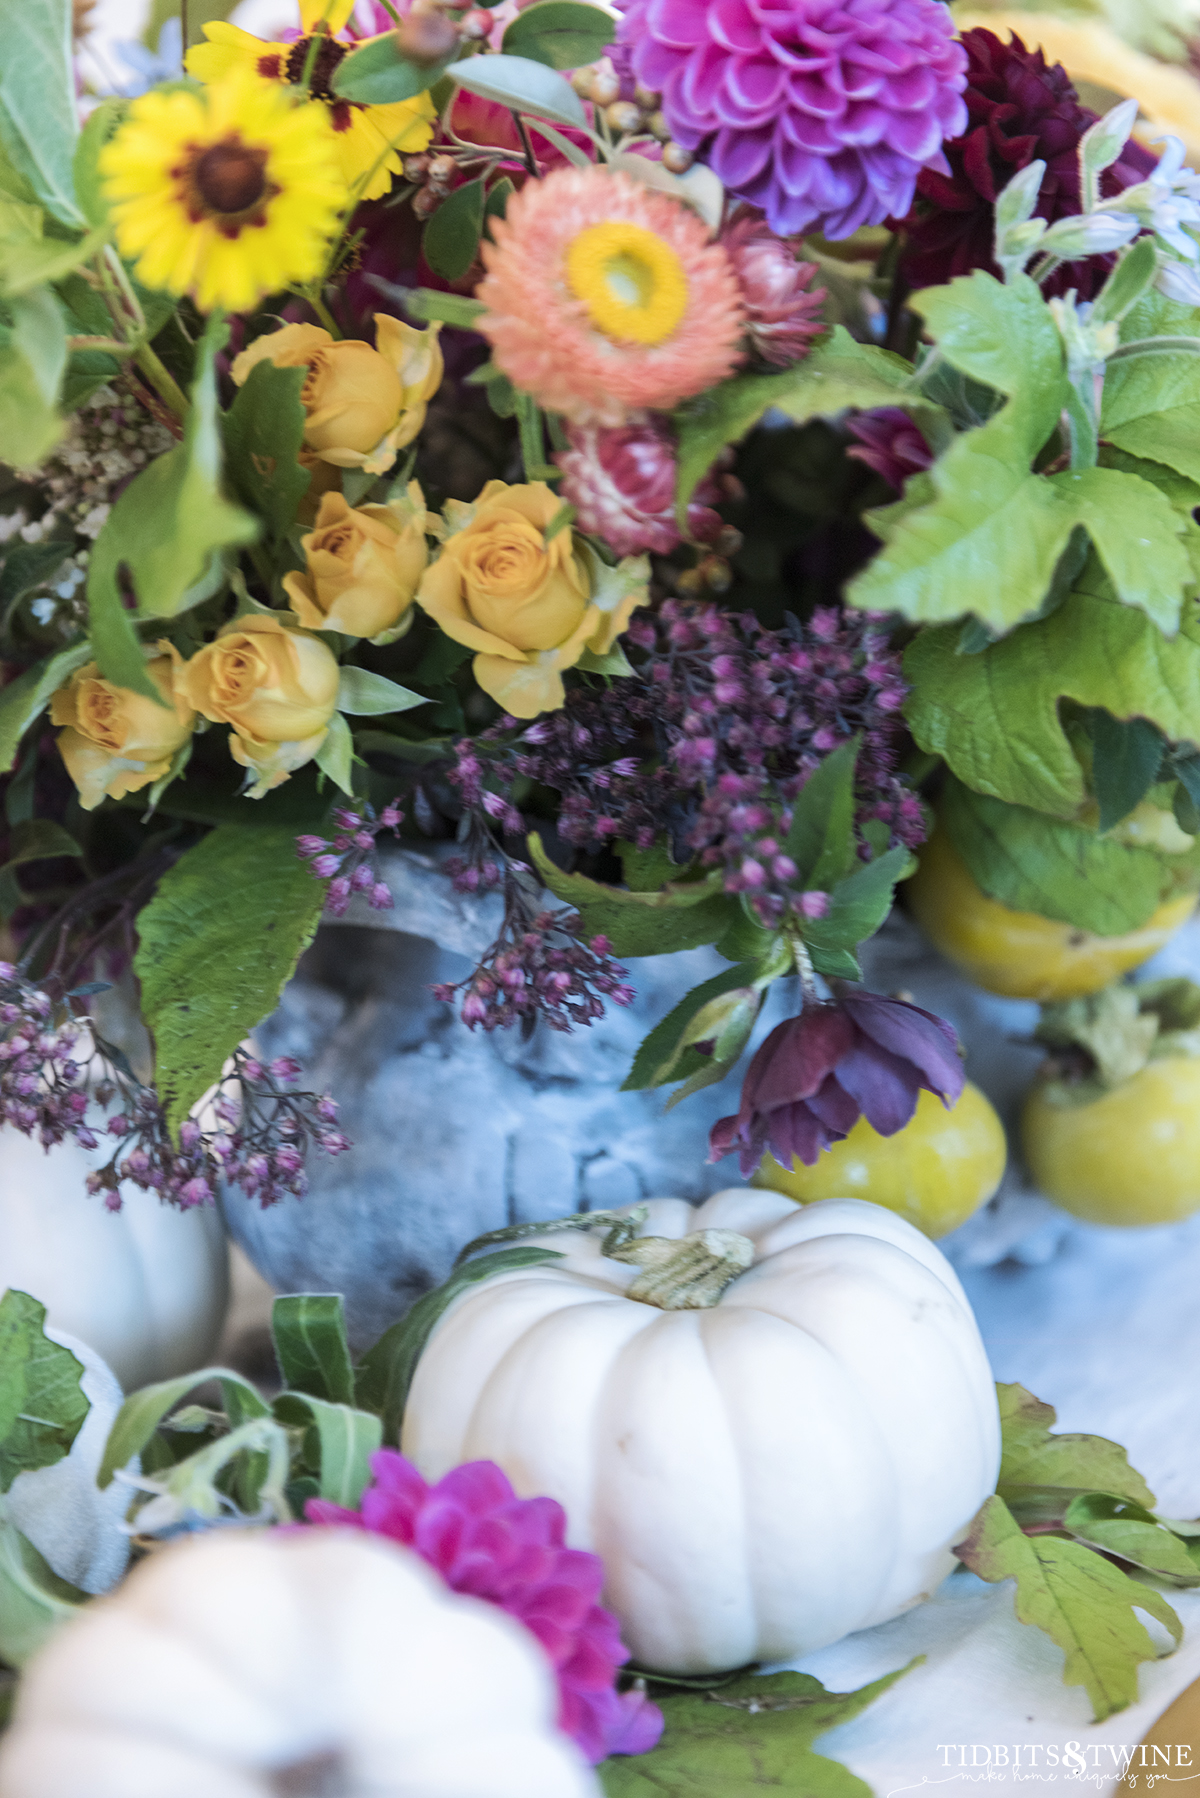 closeup of small white pumpkins on dining table surrounded by fall floral display in pinks greens and orange